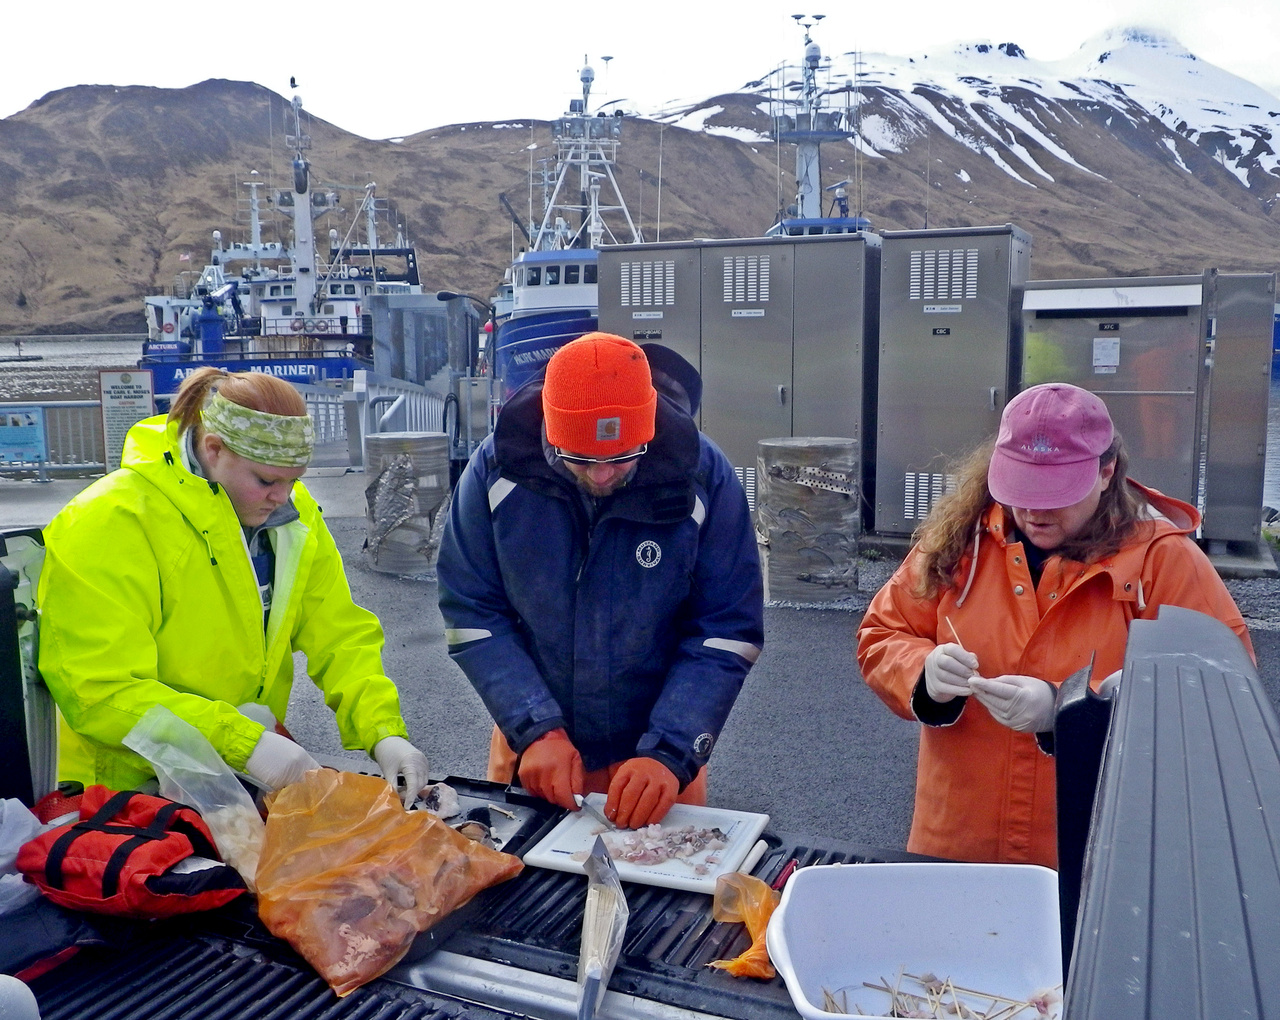 Sarah Johnson (Alaska Department of Fish and Game Observer) (left), Jeff Cox (Bering Sea Fisheries Research Foundation), Pam Jensen (NOAA Fisheries) preparing food for crab. Sarah, Jeff and Pam are cutting cod scraps into chunks and threading them onto bamboo skewers. The skewers keep the pieces of cod from washing out of the nets as they are lowered into the water.